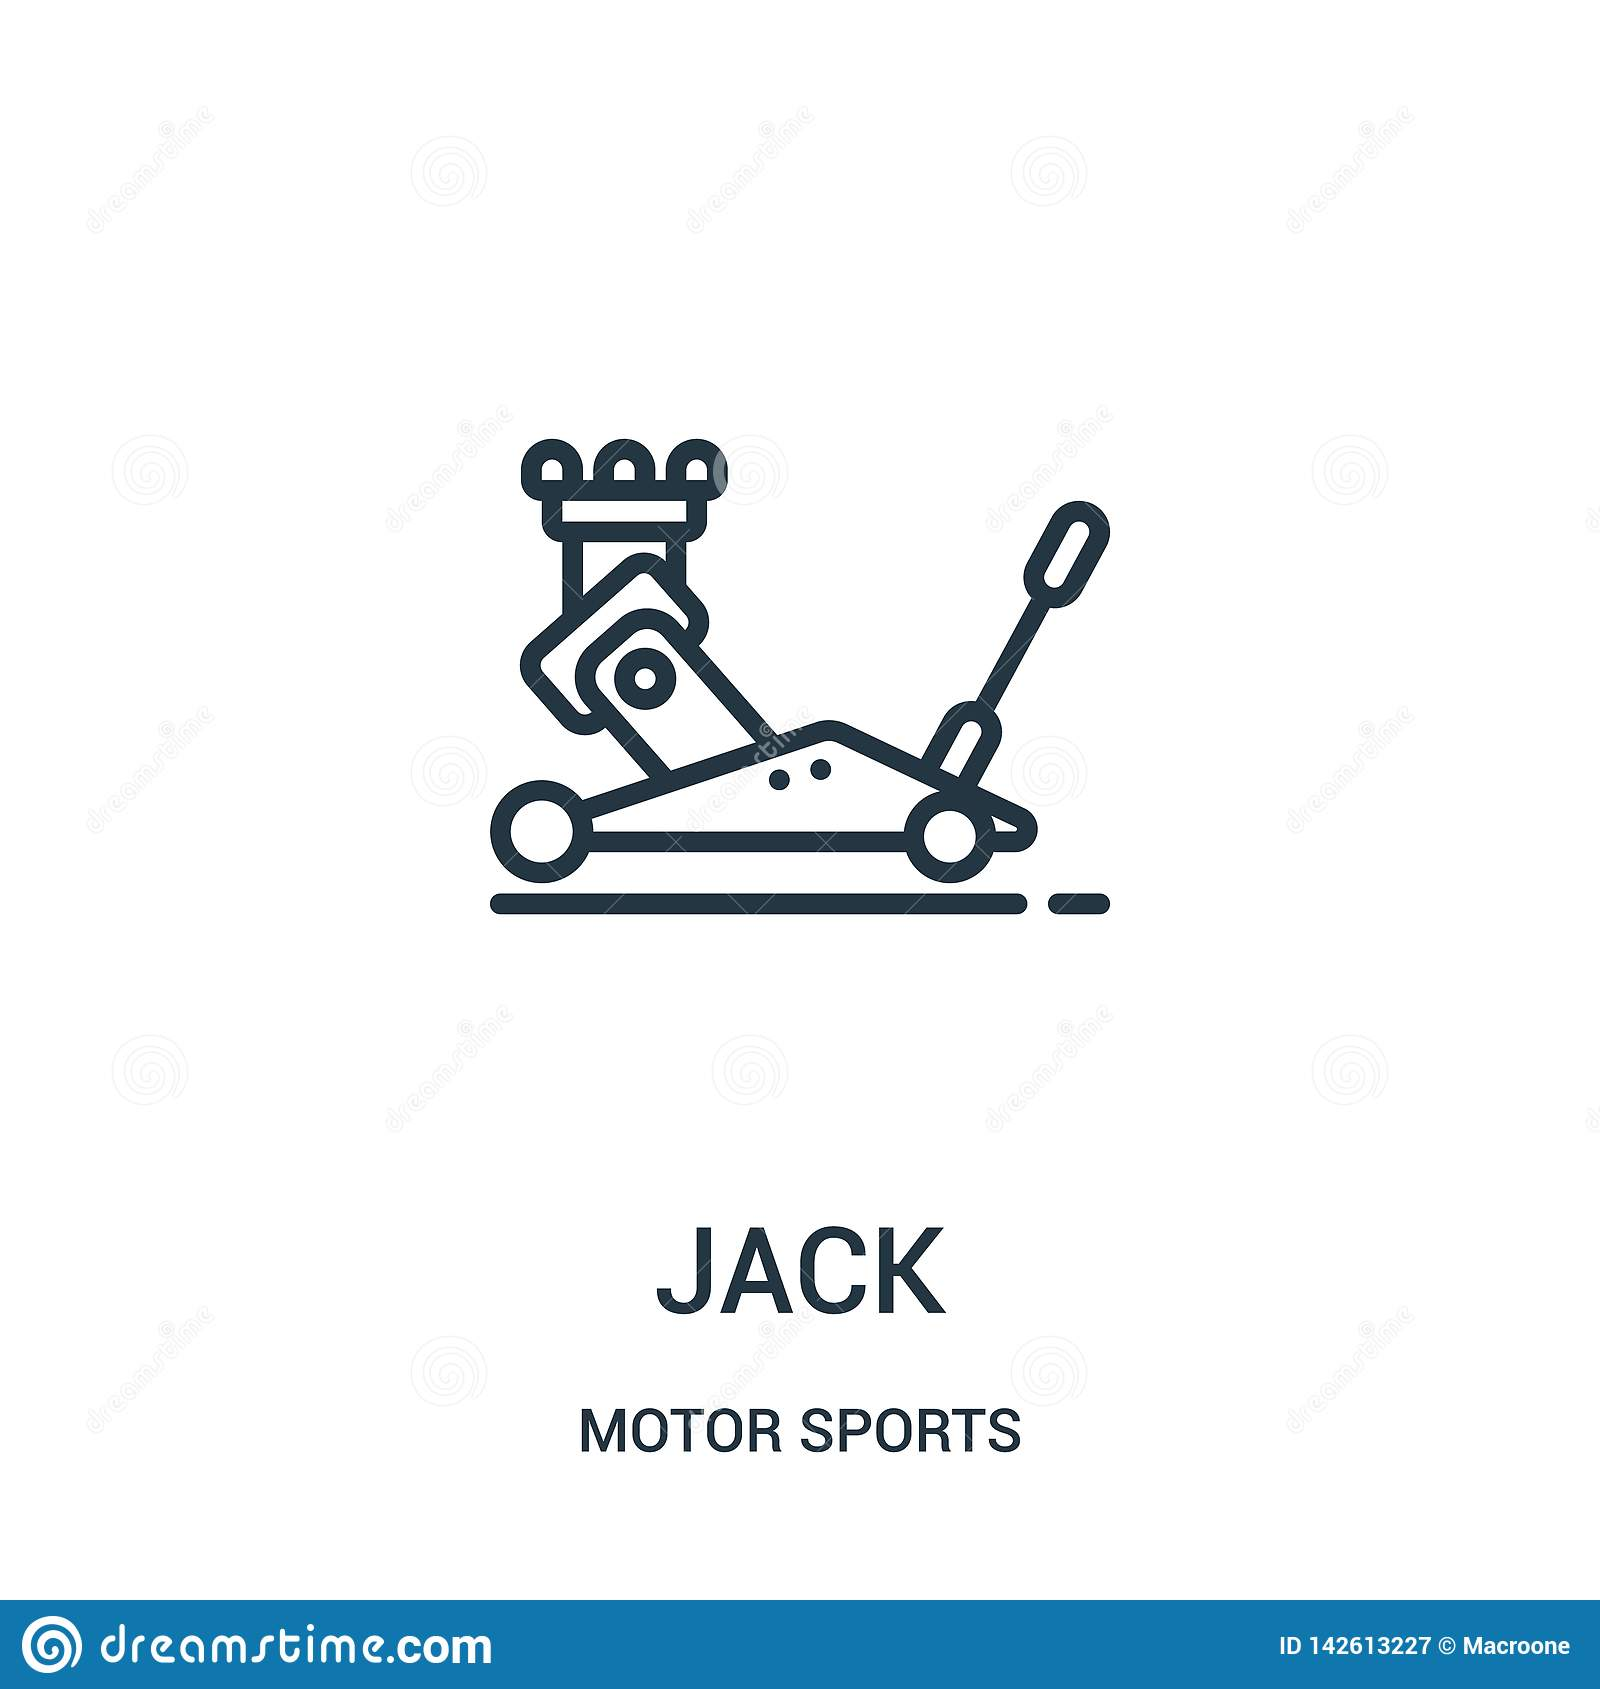 jack icon vector from motor sports collection. Thin line jack outline icon vector illustration. Linear symbol